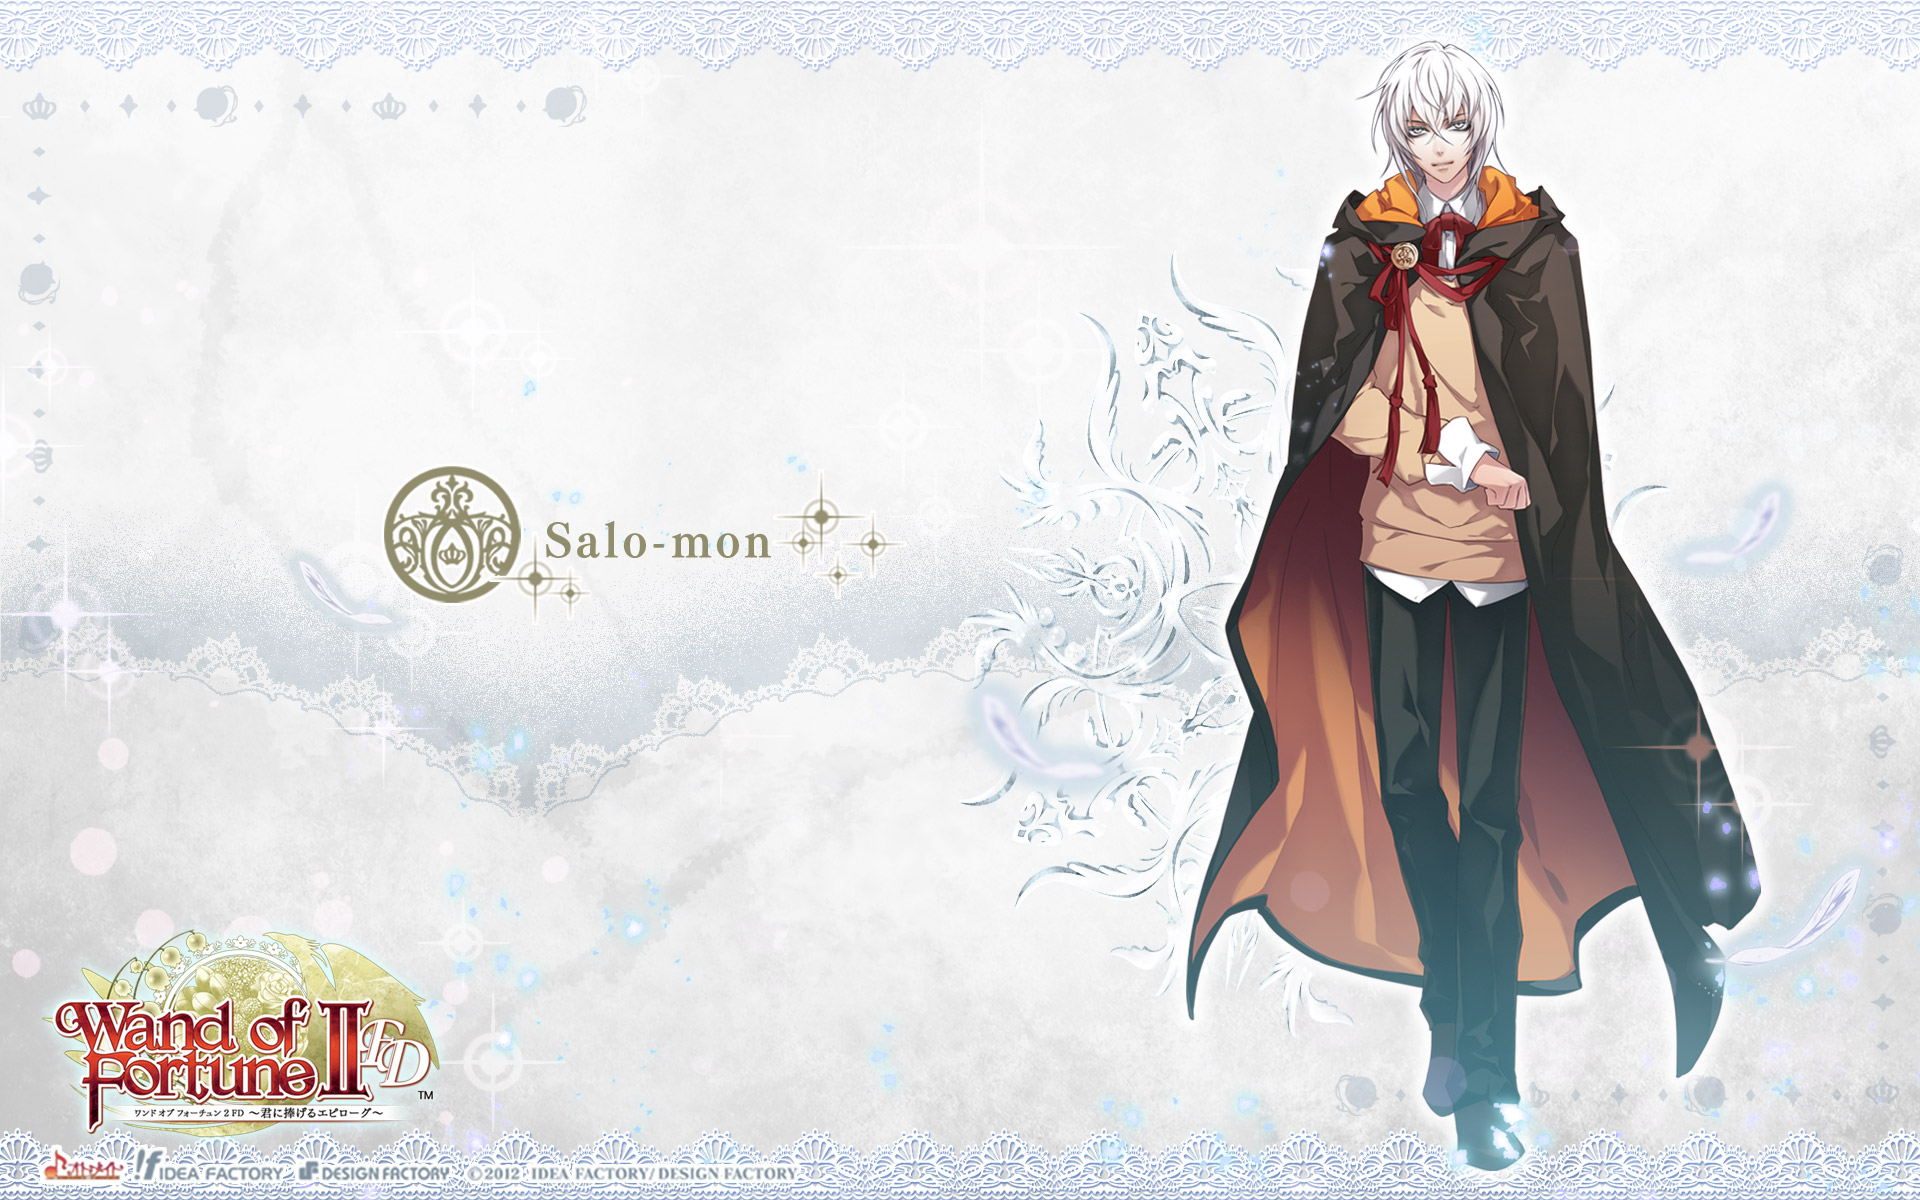 Salo-mon, Wallpaper - Zerochan Anime Image Board